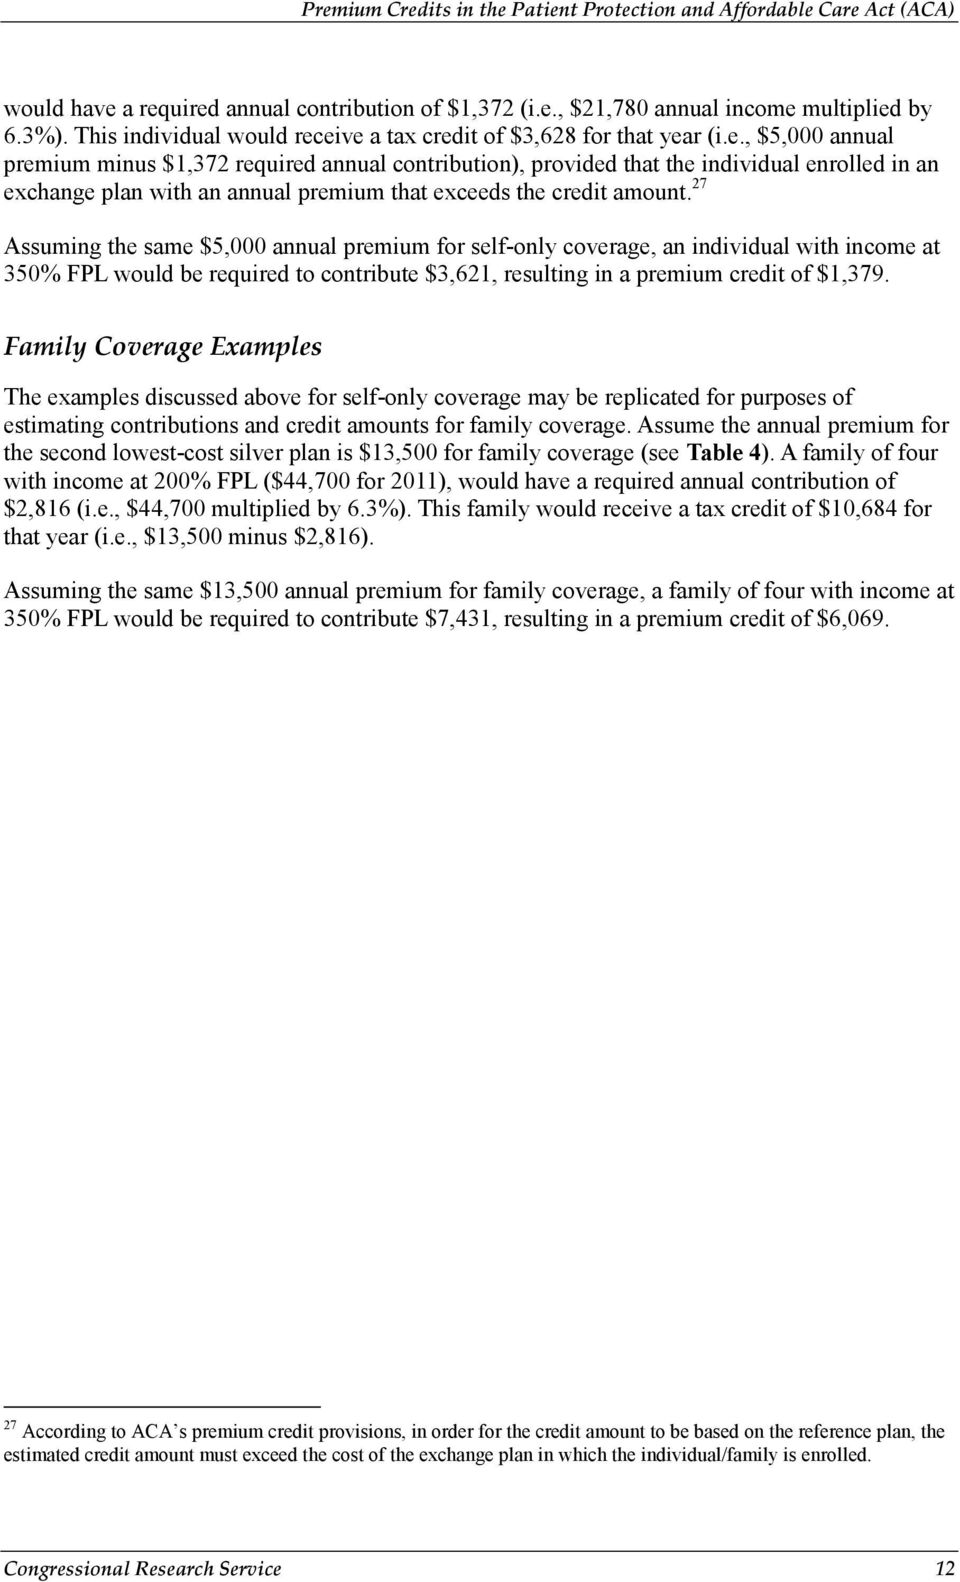 Family Coverage Examples The examples discussed above for self-only coverage may be replicated for purposes of estimating contributions and credit amounts for family coverage.